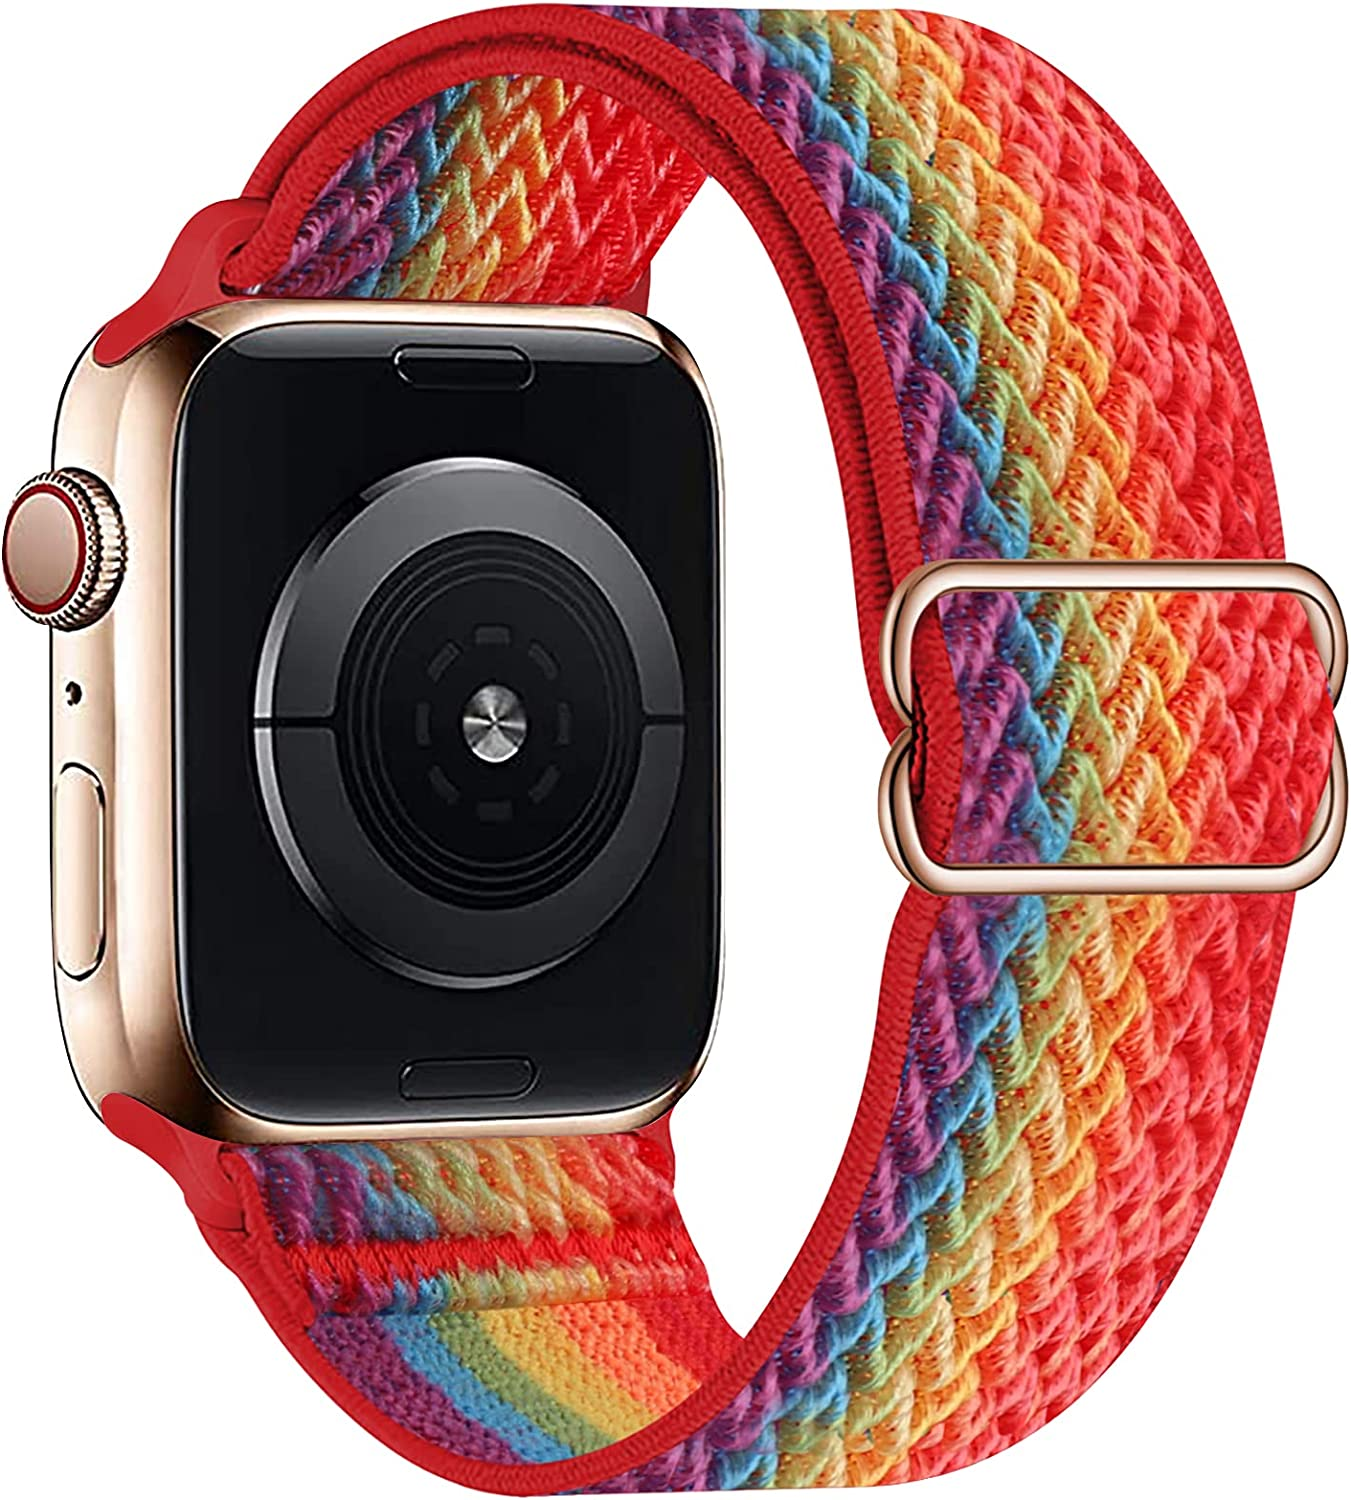 OHCBOOGIE Stretchy Solo Loop Strap Compatible with Apple Watch Bands 38mm 40mm 42mm 44mm ,Adjustable Stretch Braided Sport Elastics Weave Nylon Women Men Wristband Compatible with iWatch Series 6/5/4/3/2/1 SE,Colorful,38/40mm